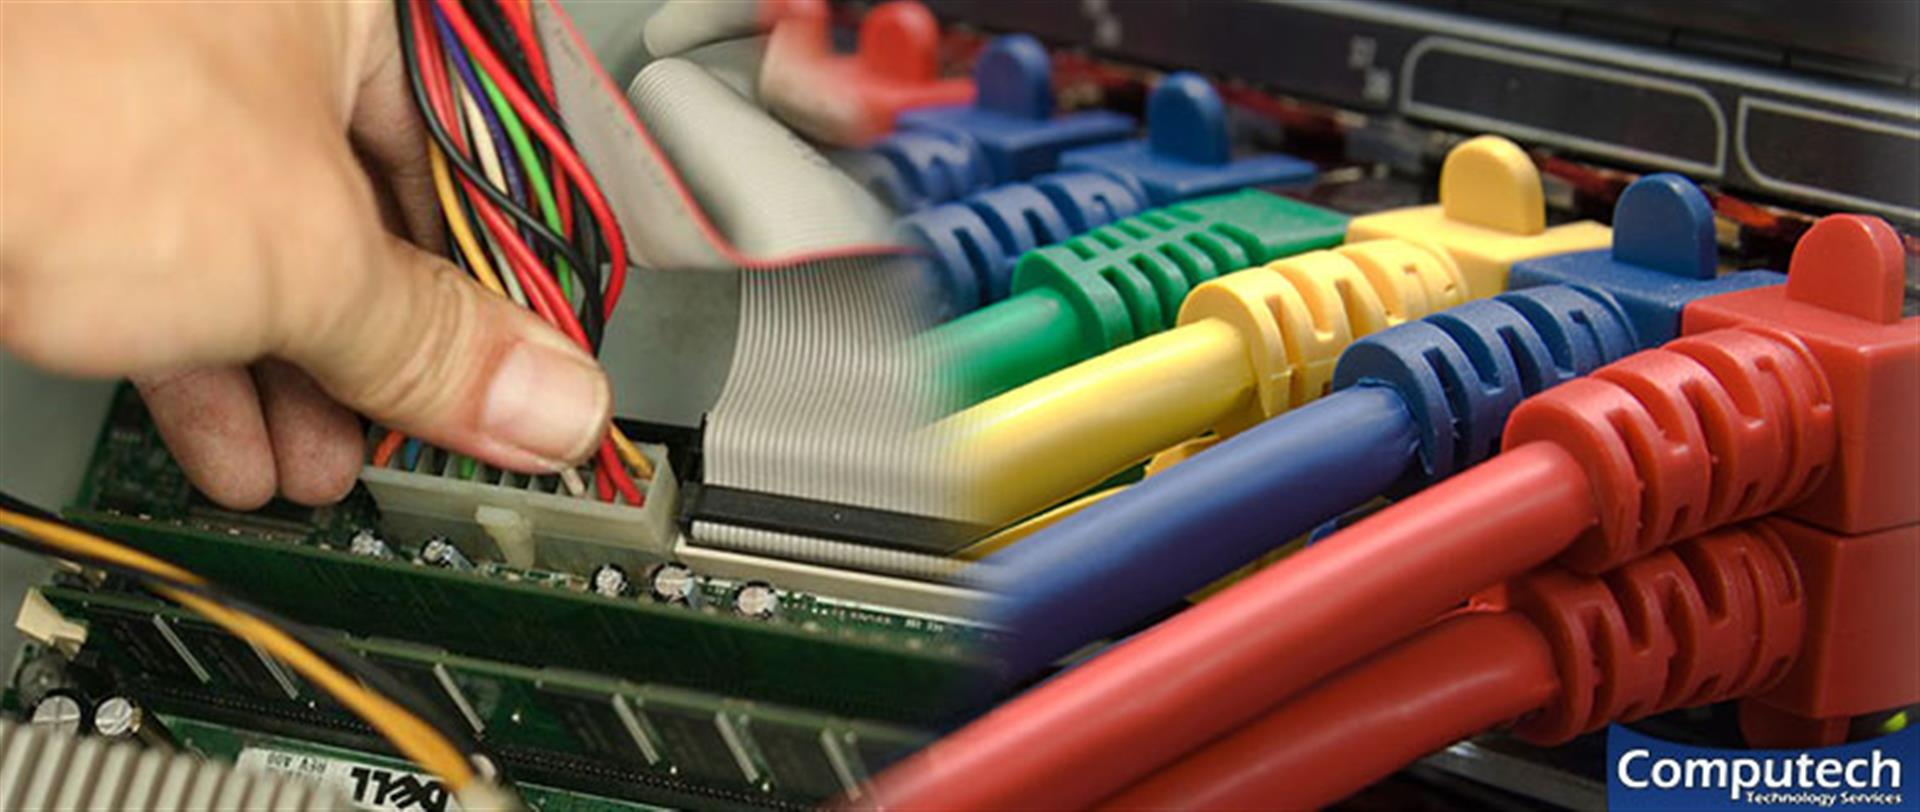 Crossville Tennessee On Site Computer and Printer Repairs, Networking, Voice & Data Cabling Services